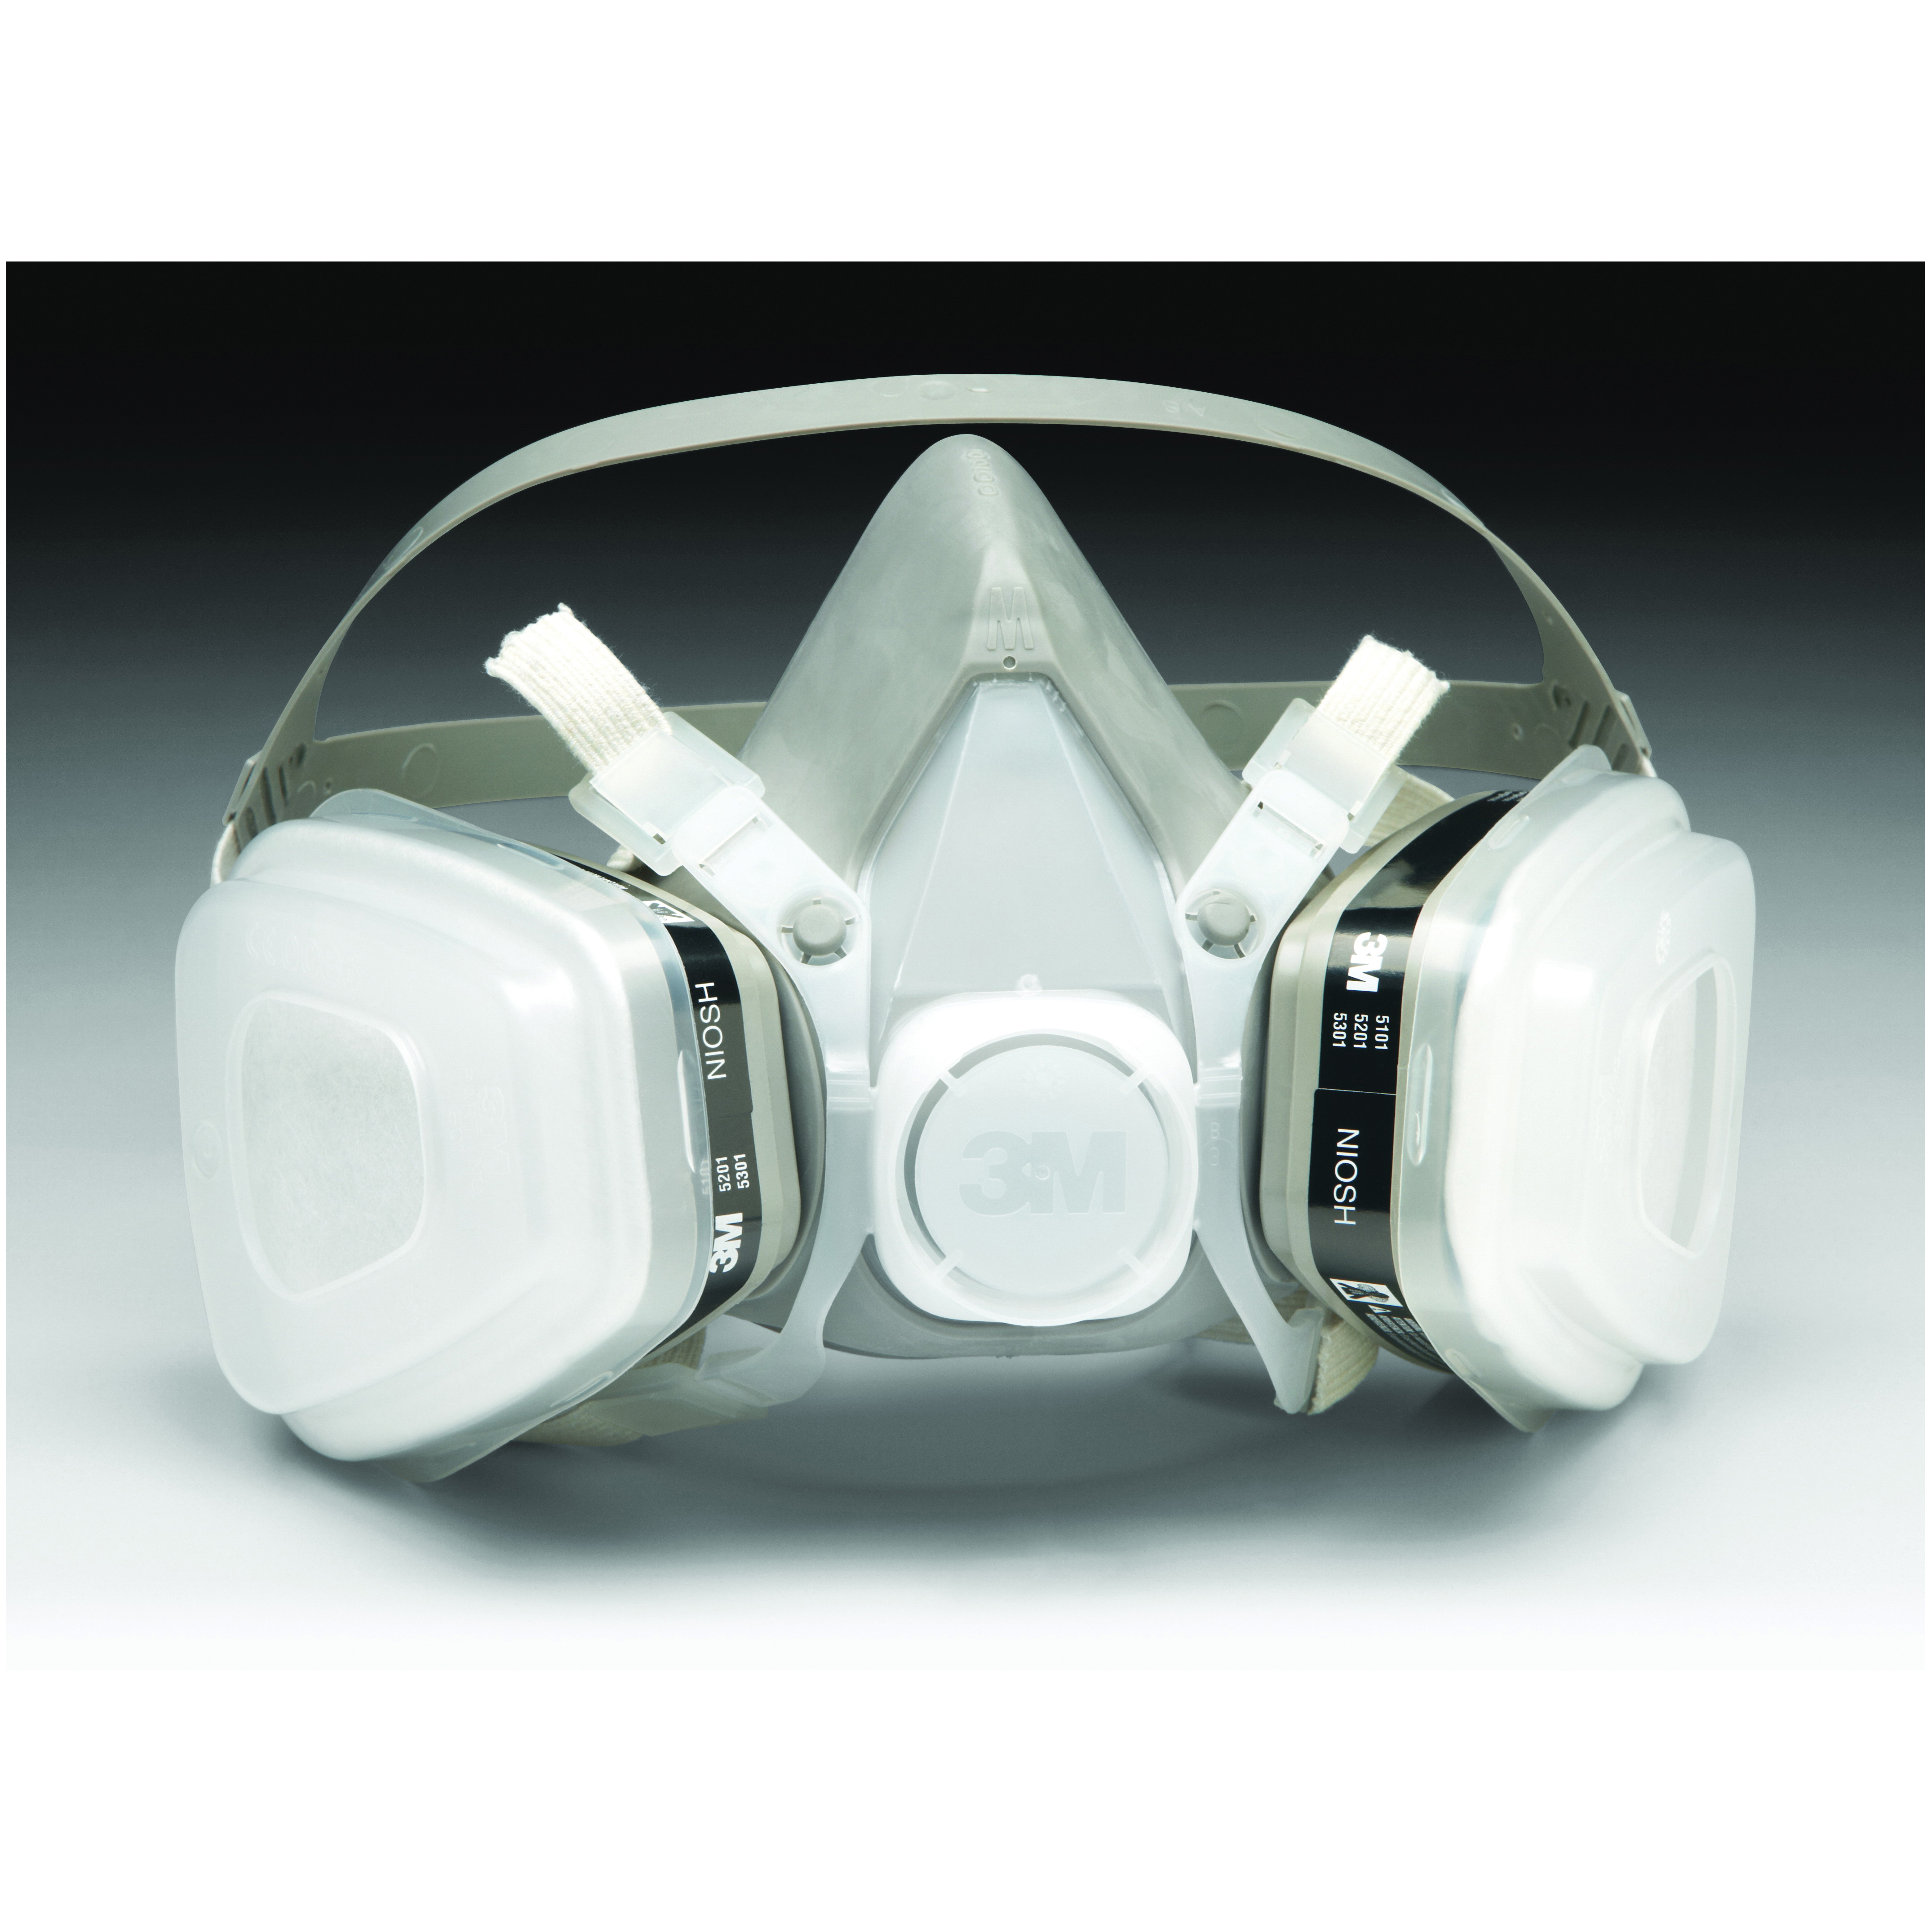 3M™ 051138-66068 51P71 5000 Disposable Half Facepiece Respirator Assembly, S, Resists: Acid Gas, Chlorine, Hydrogen Chloride, Hydrogen Fluoride, Hydrogen Sulfide, Organic Vapors and Sulfur Dioxide